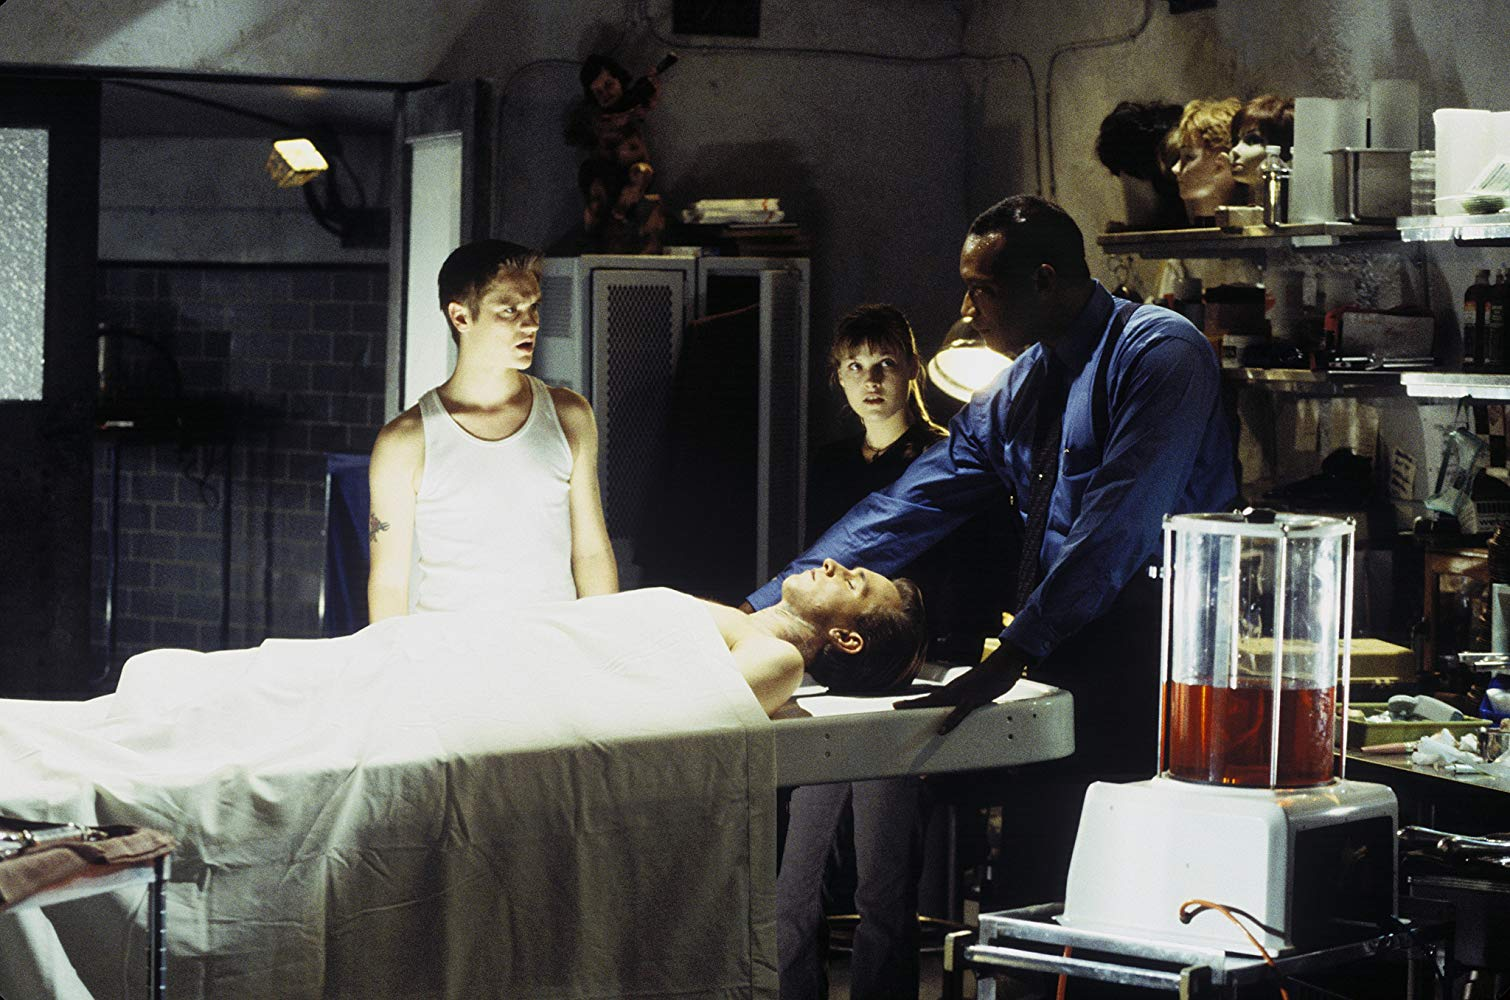 Morgue attendant Tony Todd explains to Devo Sawa and Ali Larter explains how fate and Death operate in Final Destination (2000)